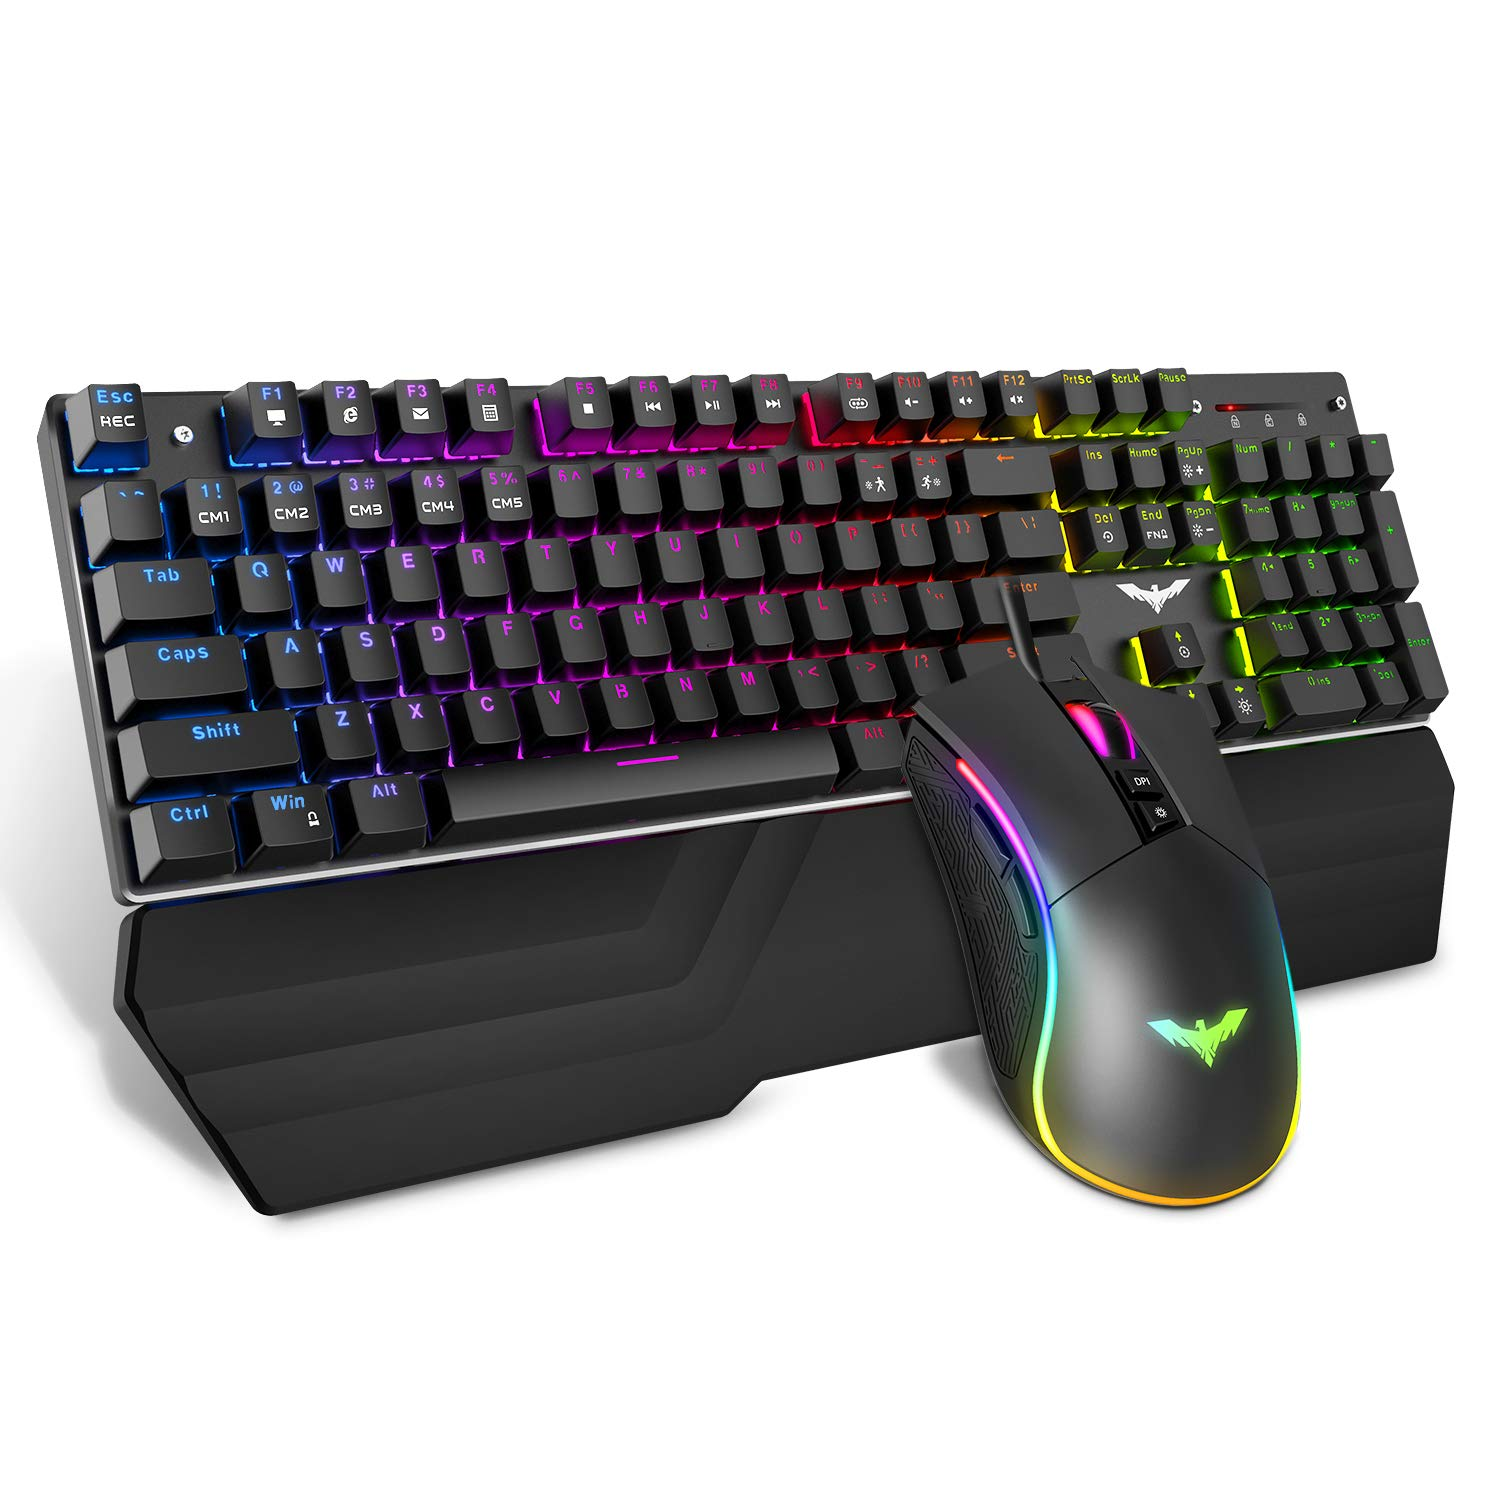 Havit Mechanical Keyboard and Mouse Combo RGB Gaming 104 Keys Blue Switches Wired USB Keyboards with Detachable Wrist Rest, Programmable Gaming Mouse for PC Gamer Computer Desktop